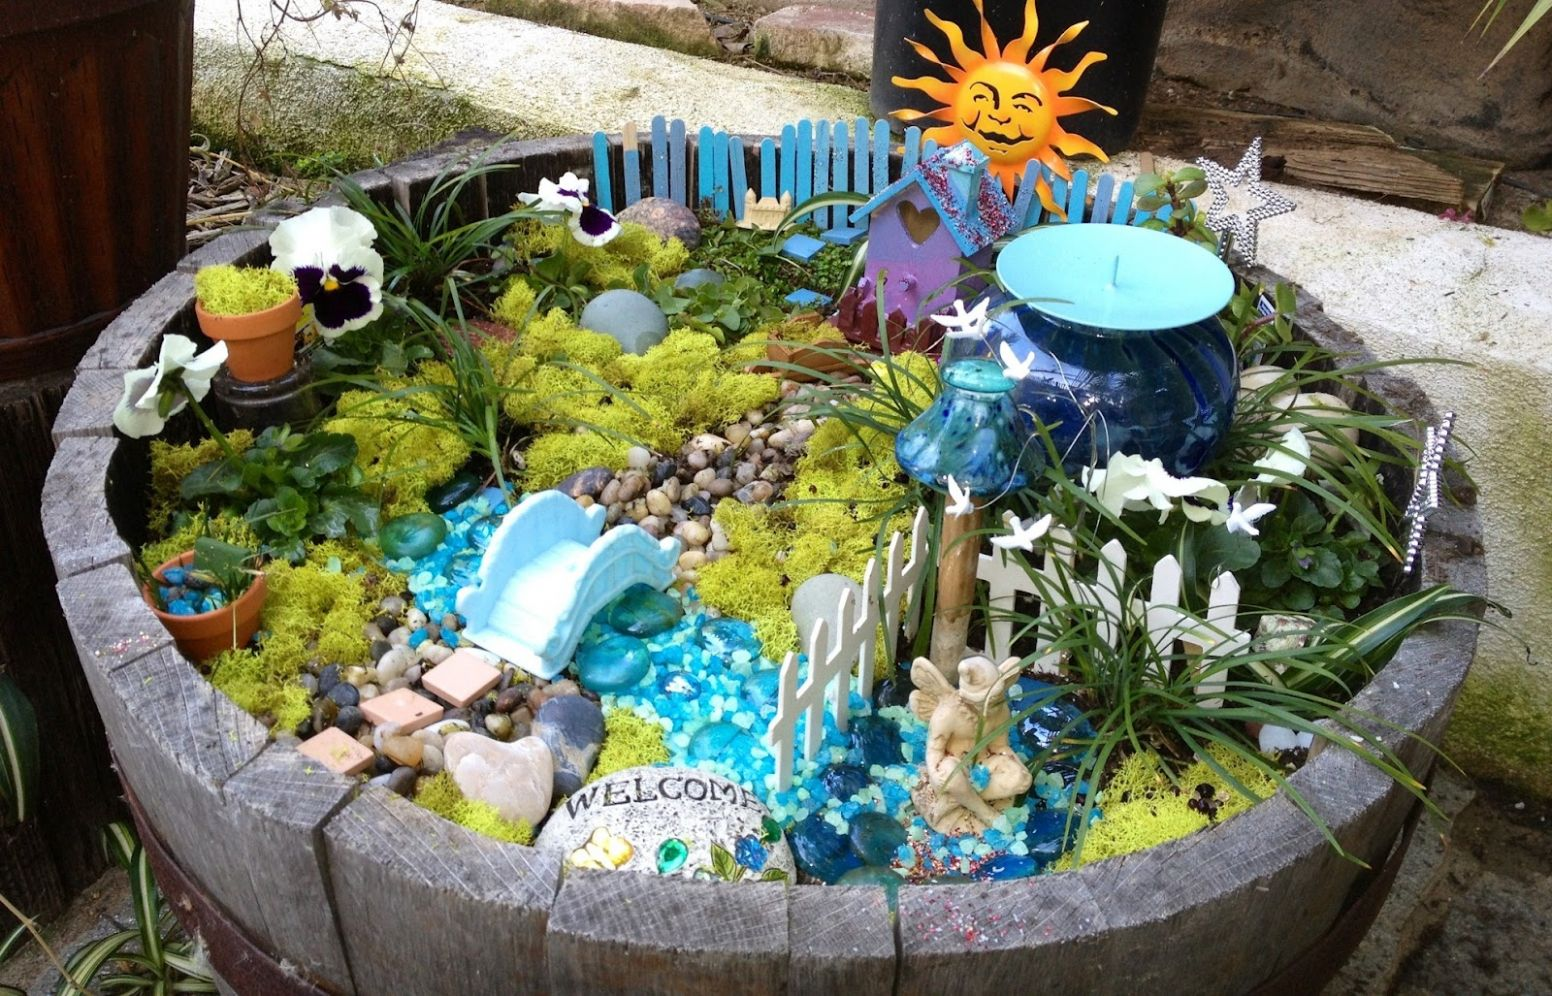 8 Fabulous Fairy Garden Ideas - Live DIY Ideas - garden ideas to make